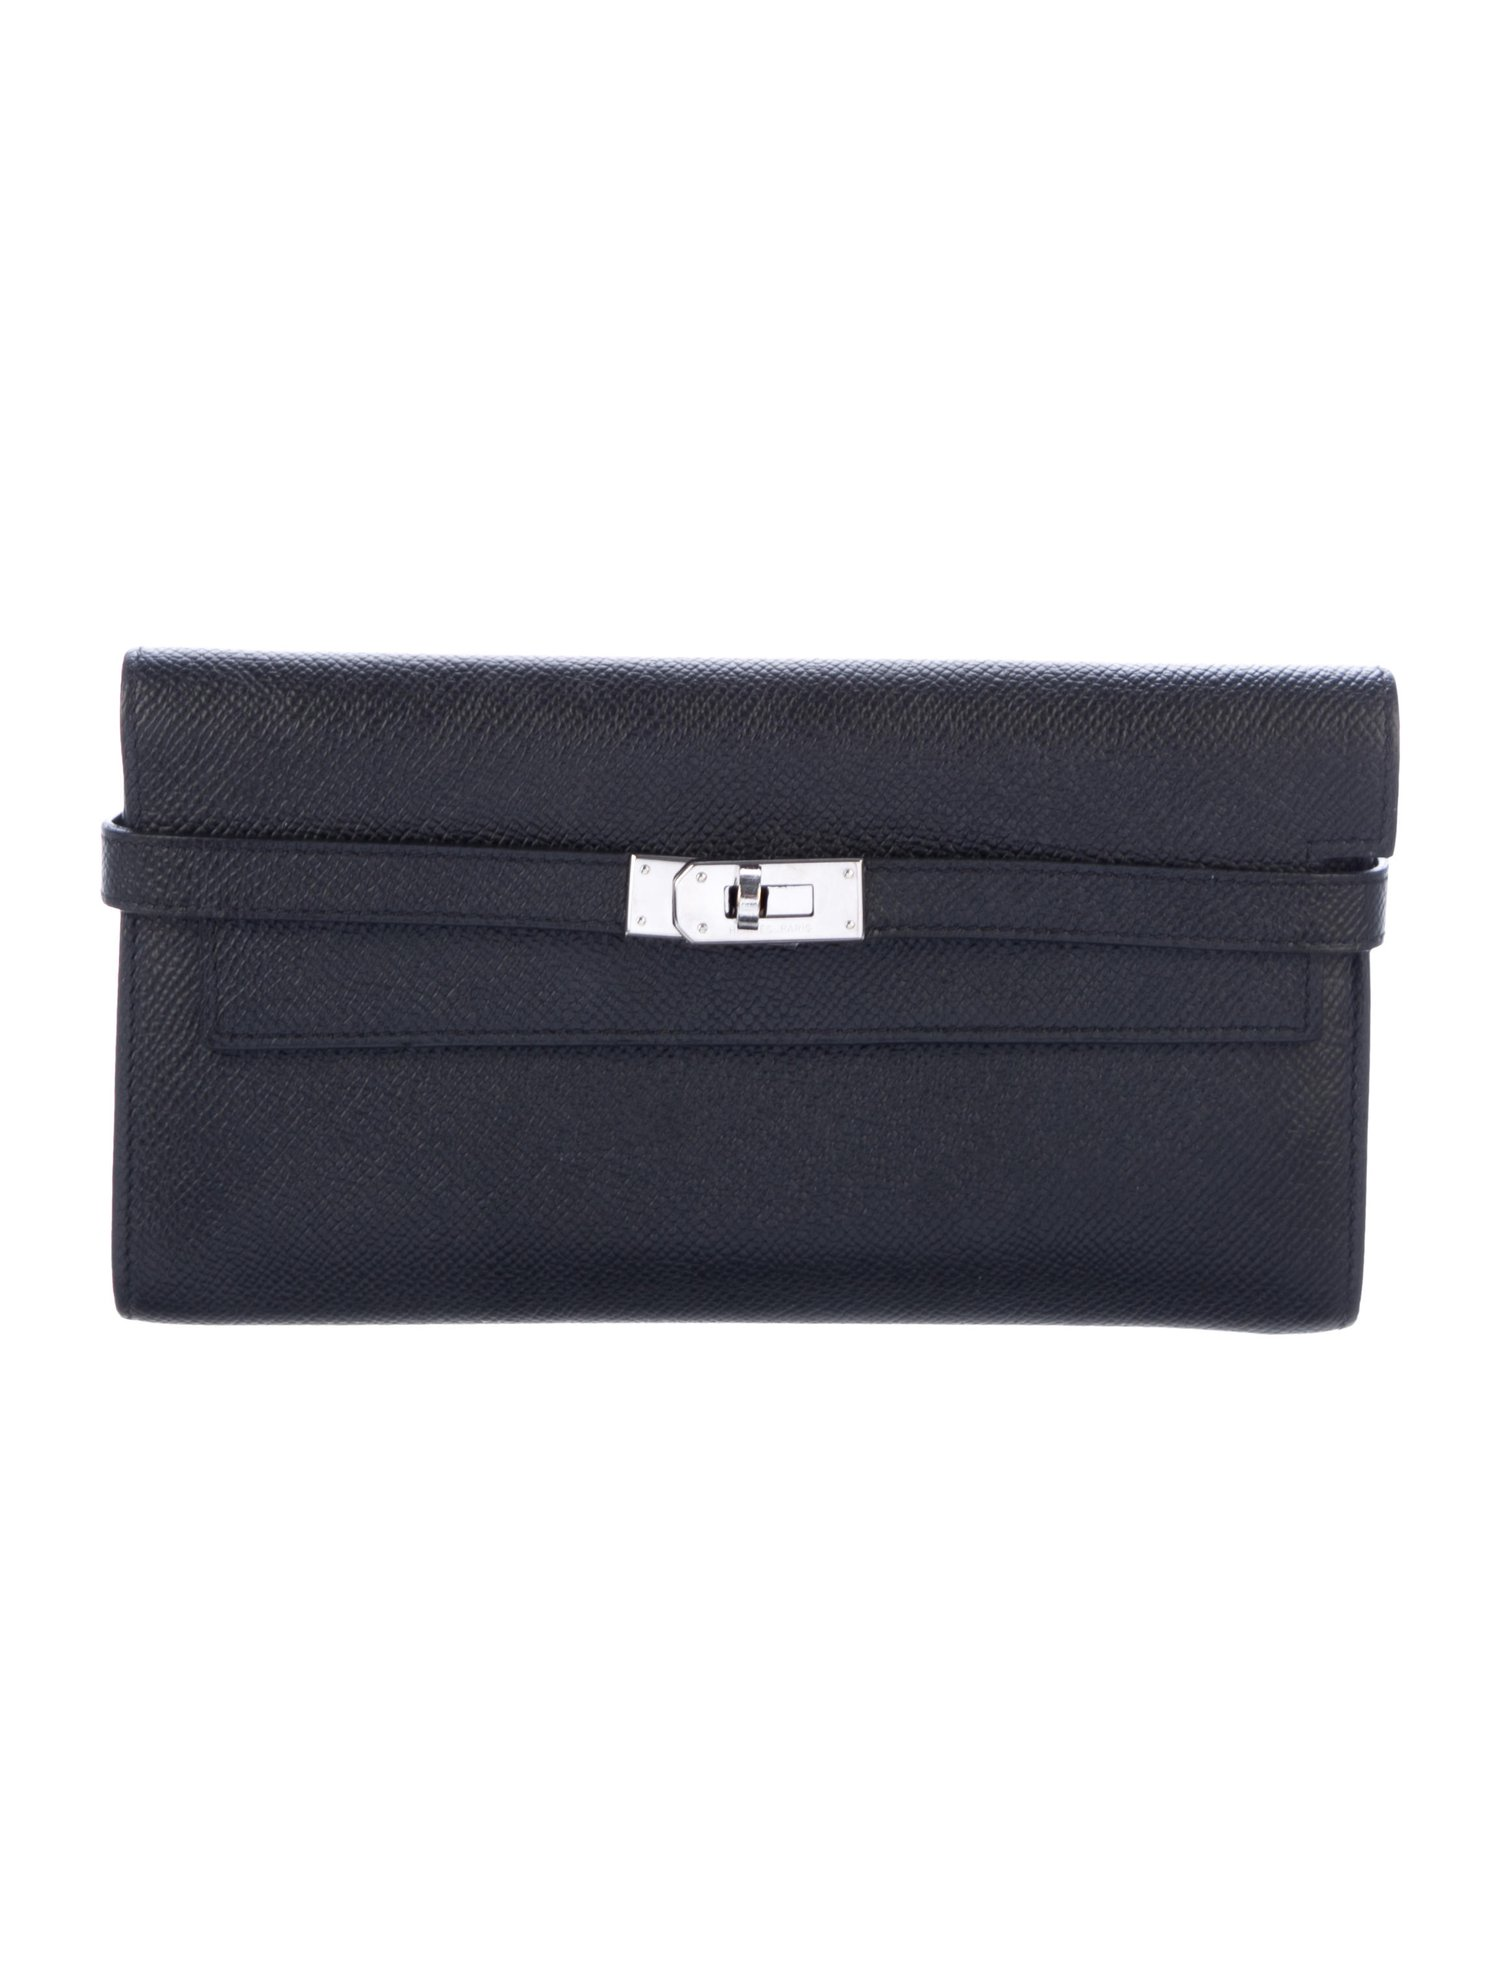 Epsom Kelly Classic Wallet by Hermes, available on therealreal.com for $3000 Kylie Jenner Bags Exact Product